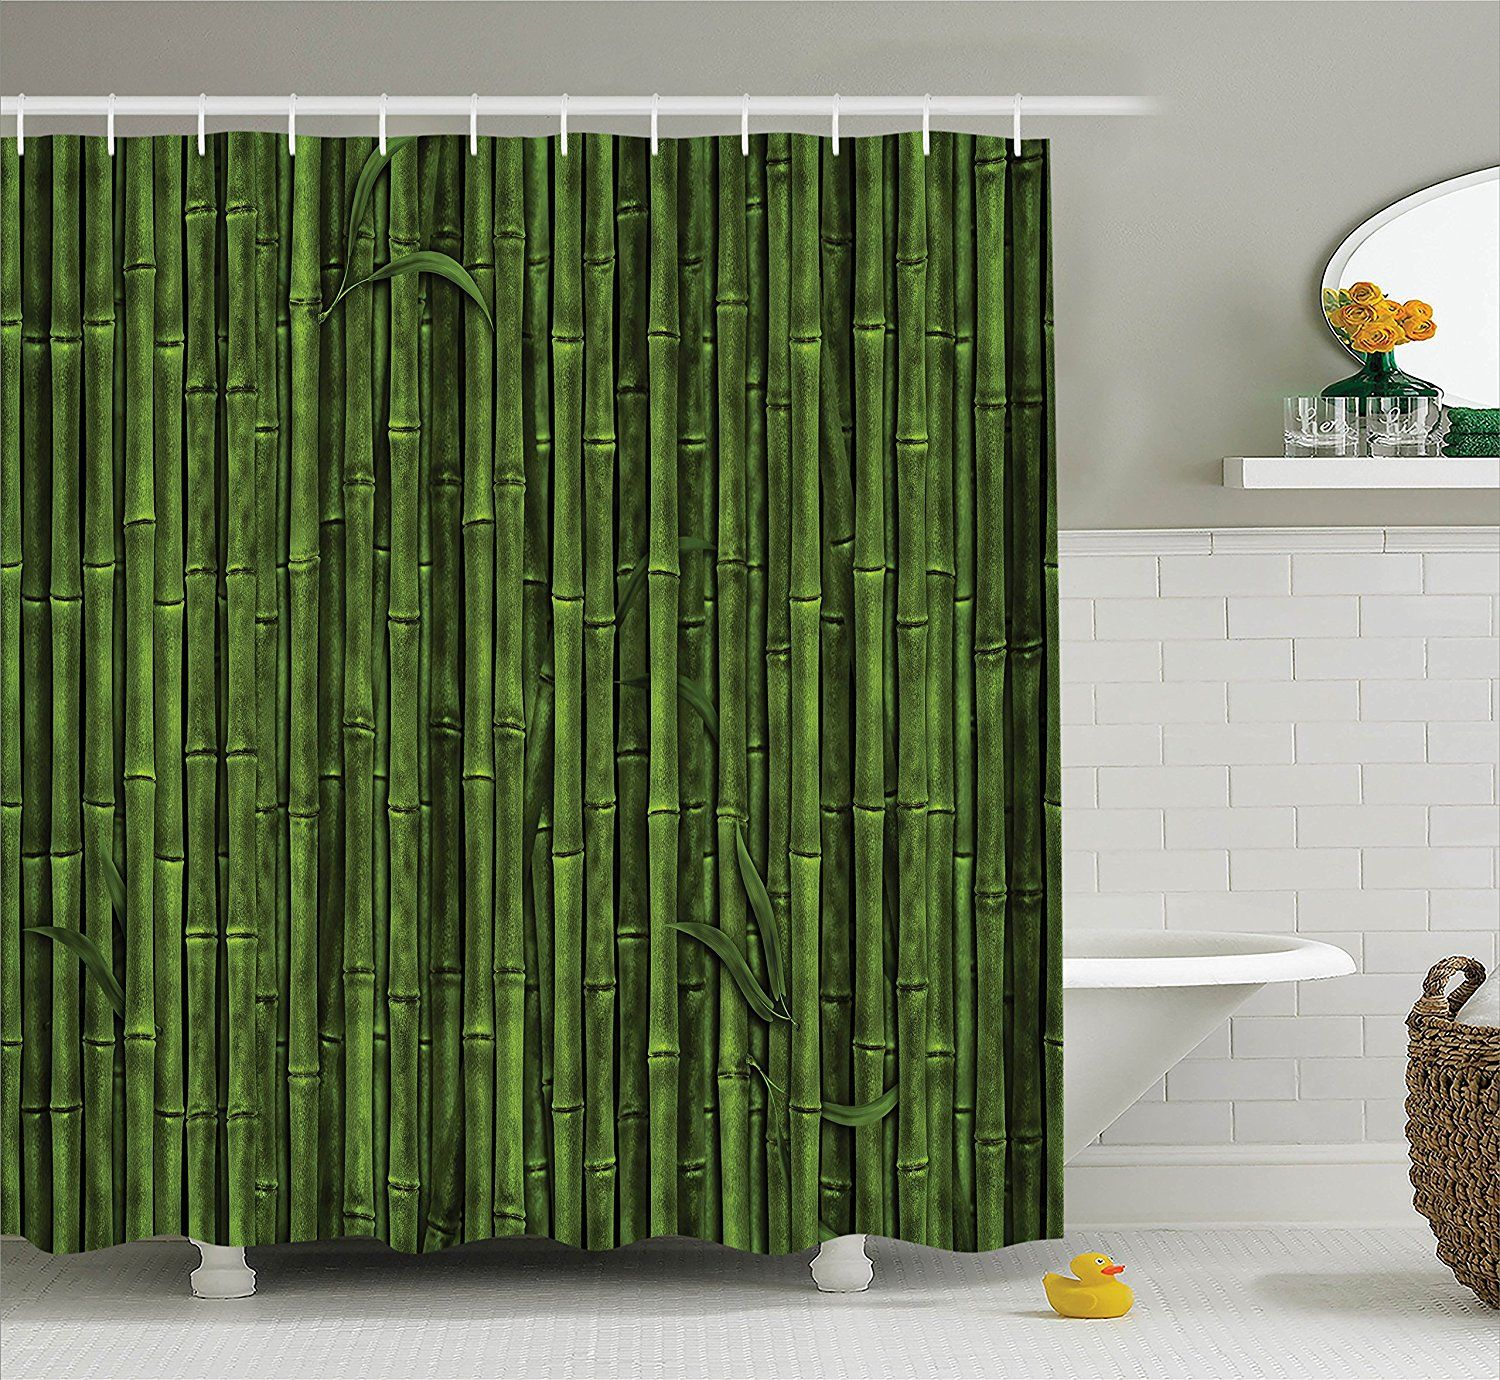 Amazon Com Ambesonne Bamboo House Decor Collection Lined Up Tall